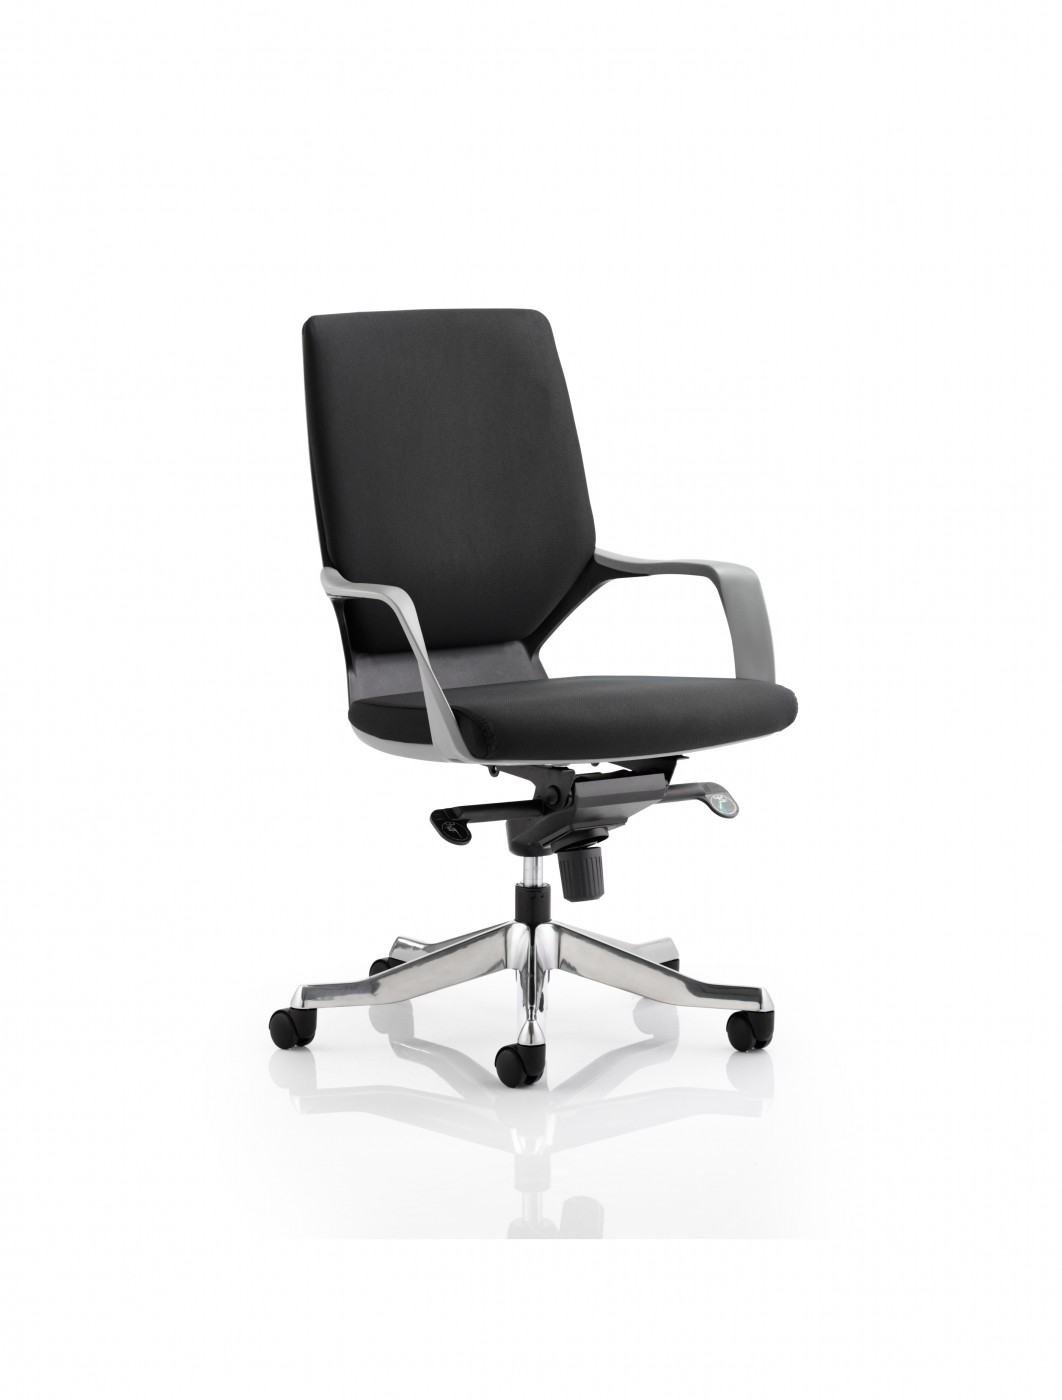 fabric office chairs uk best nursery chair dynamic xenon black executive with